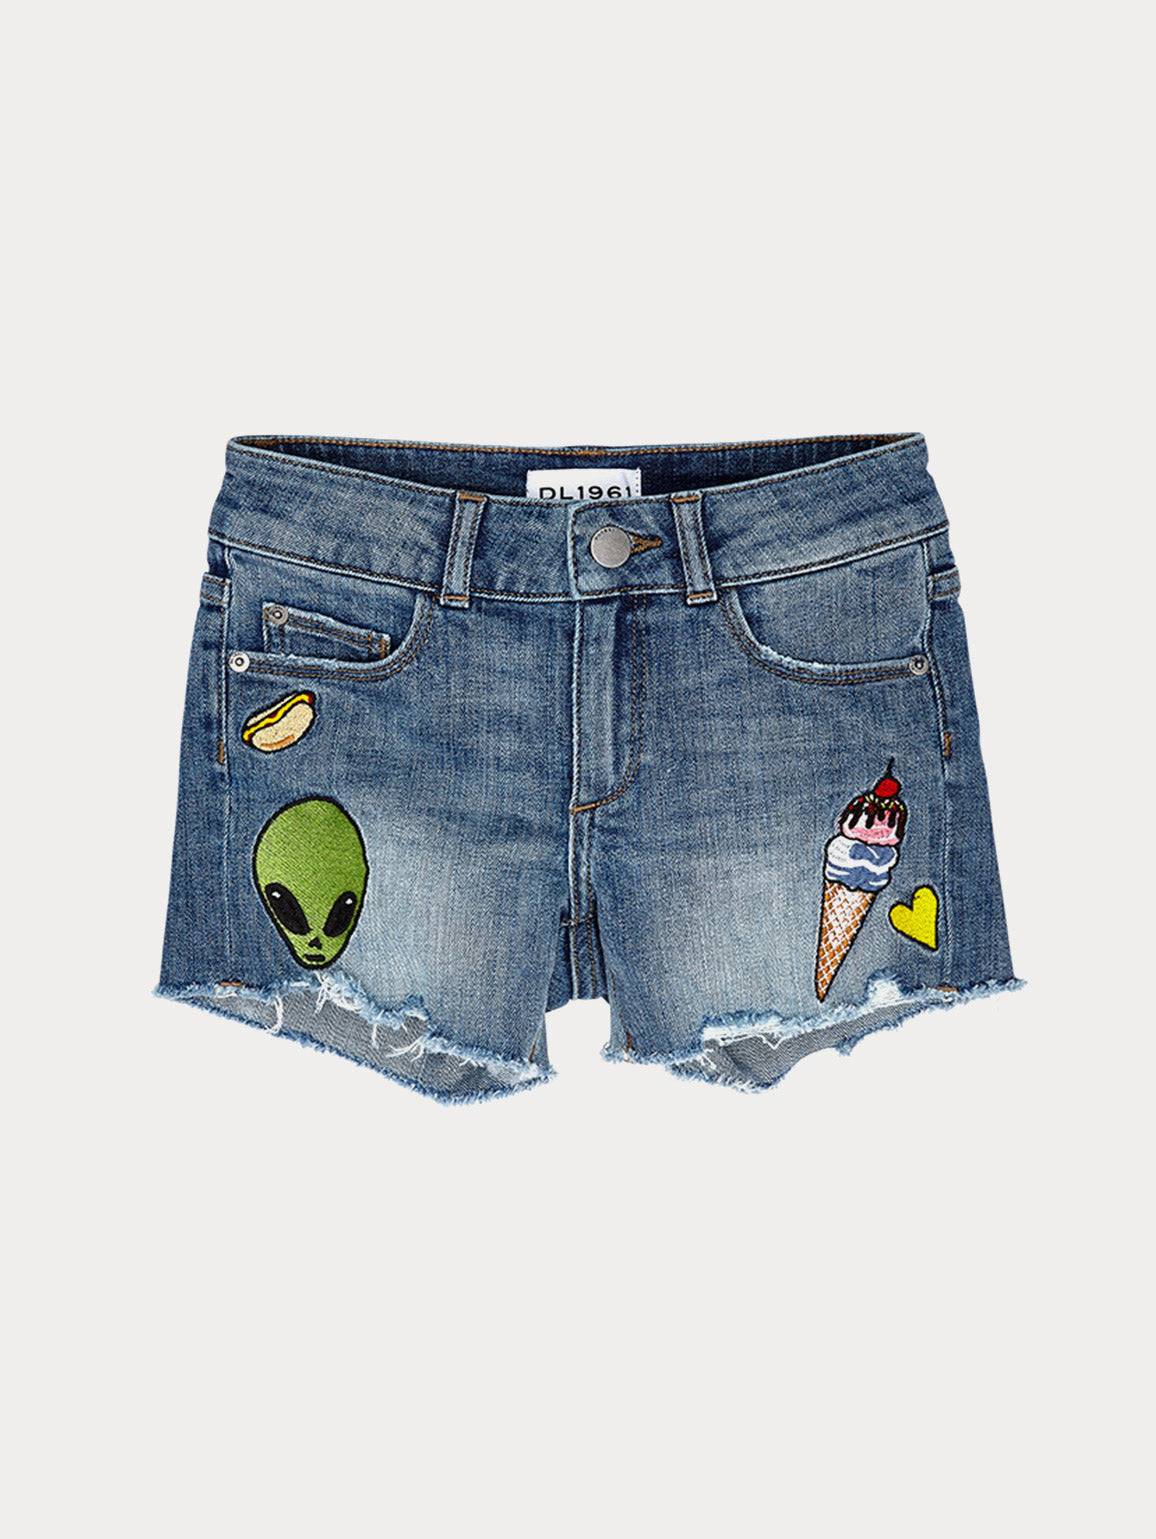 Girls - Patched Denim Shorts - Lucy/G Short Almost Famous - DL1961